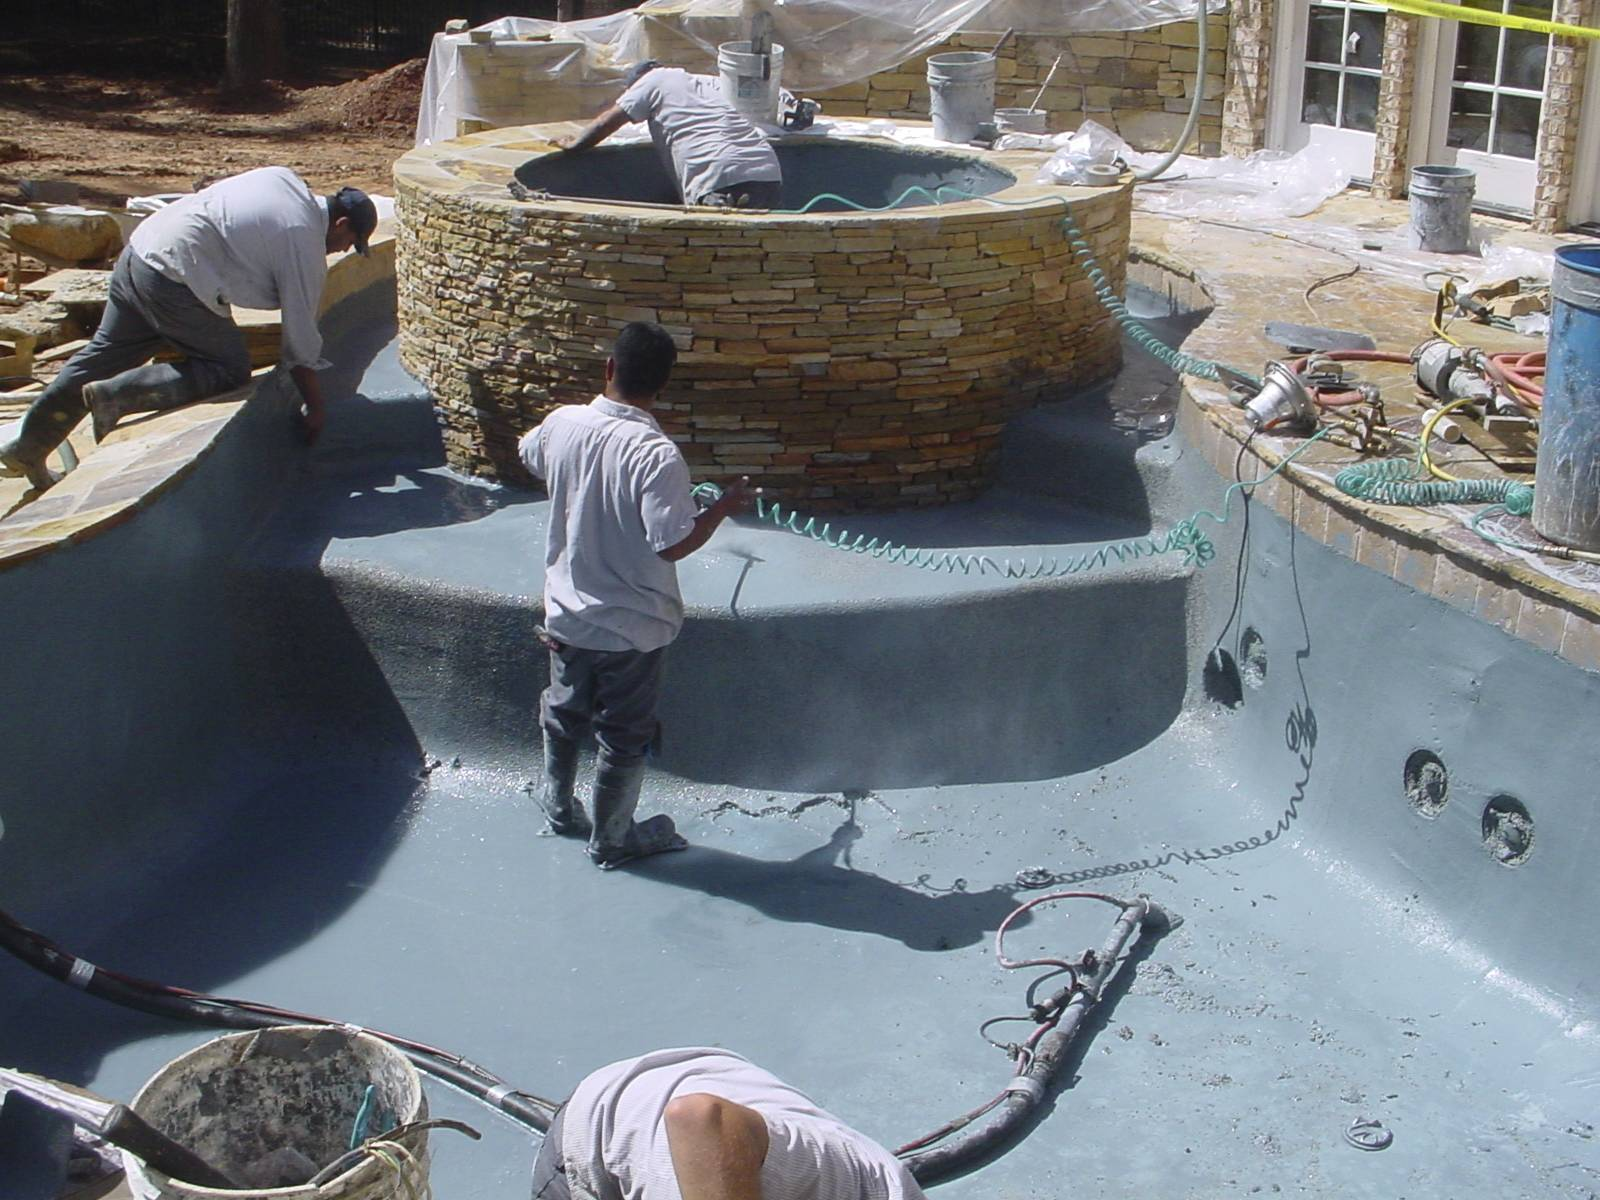 Splash pools north carolina swimming pool resurfacing for Swimming pool resurfacing